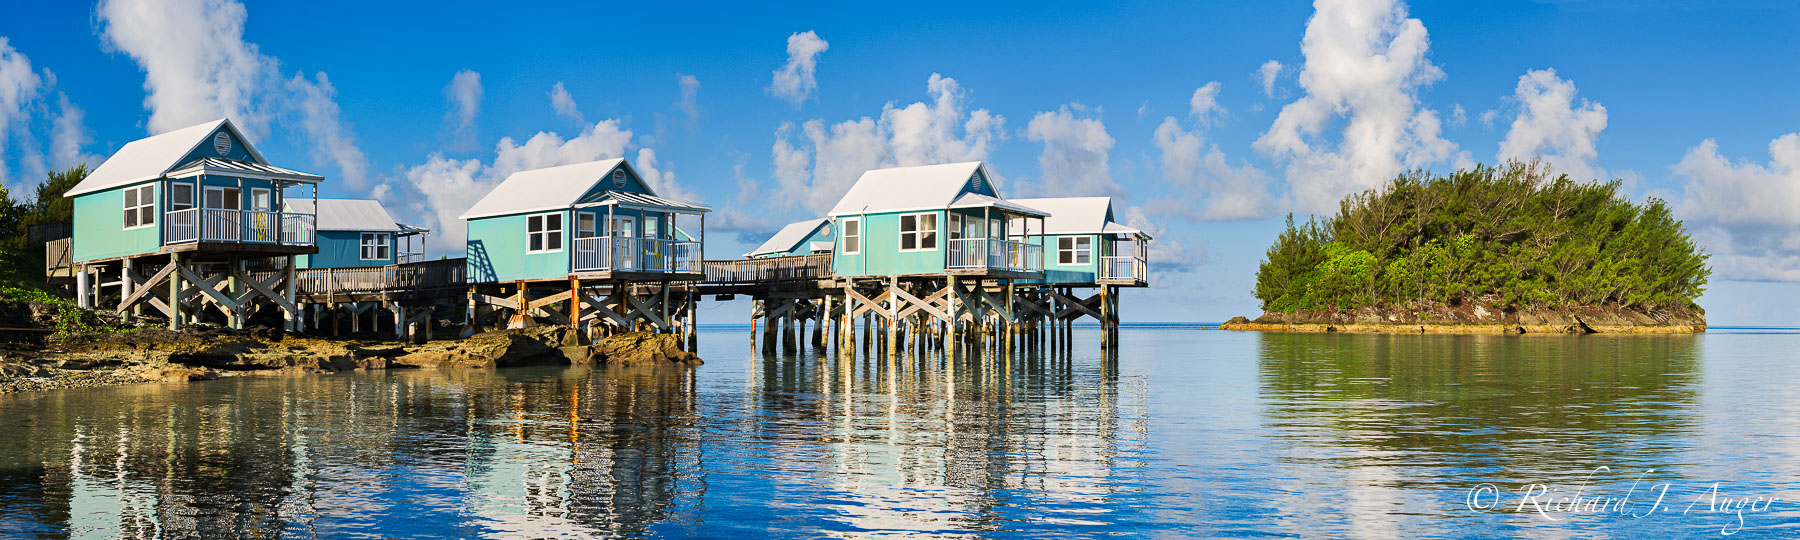 9 Beaches, Bermuda, Stilt Houses, Cottages, Caribbean, Reflections, Photograph, Panorama